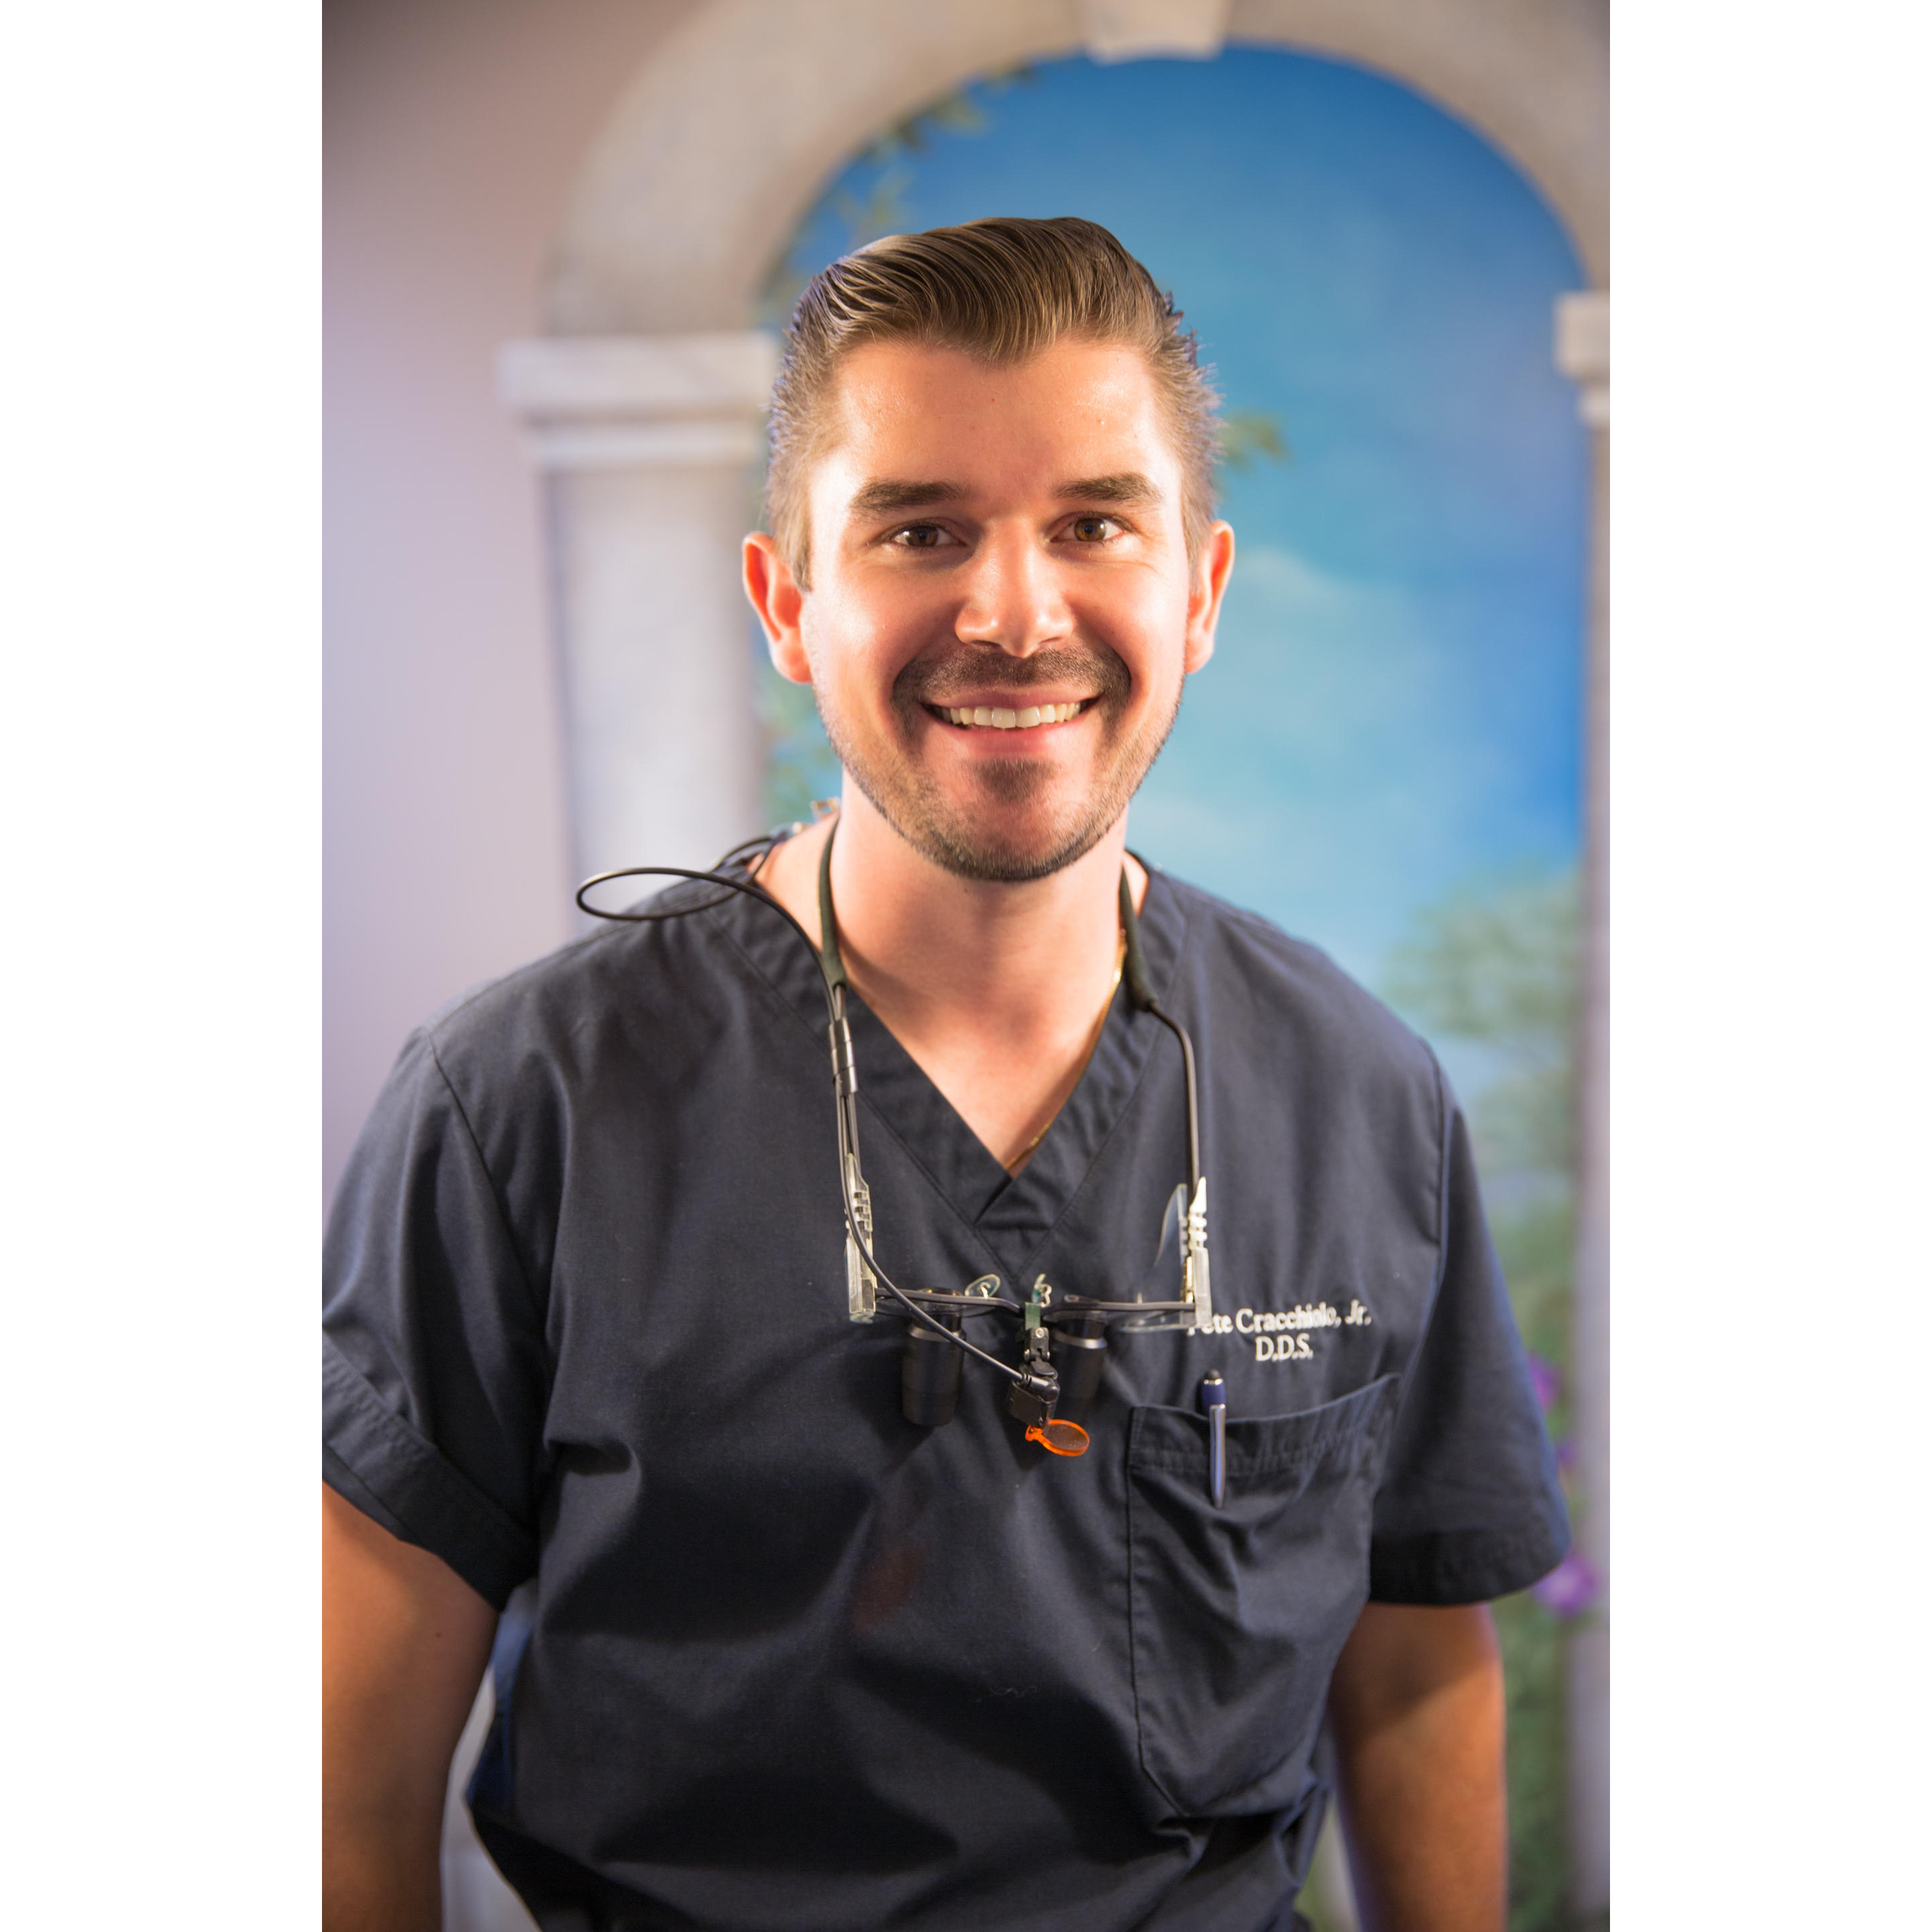 Perfecting The Art of Your Smile - Peter T. Cracchiolo Jr., DDS